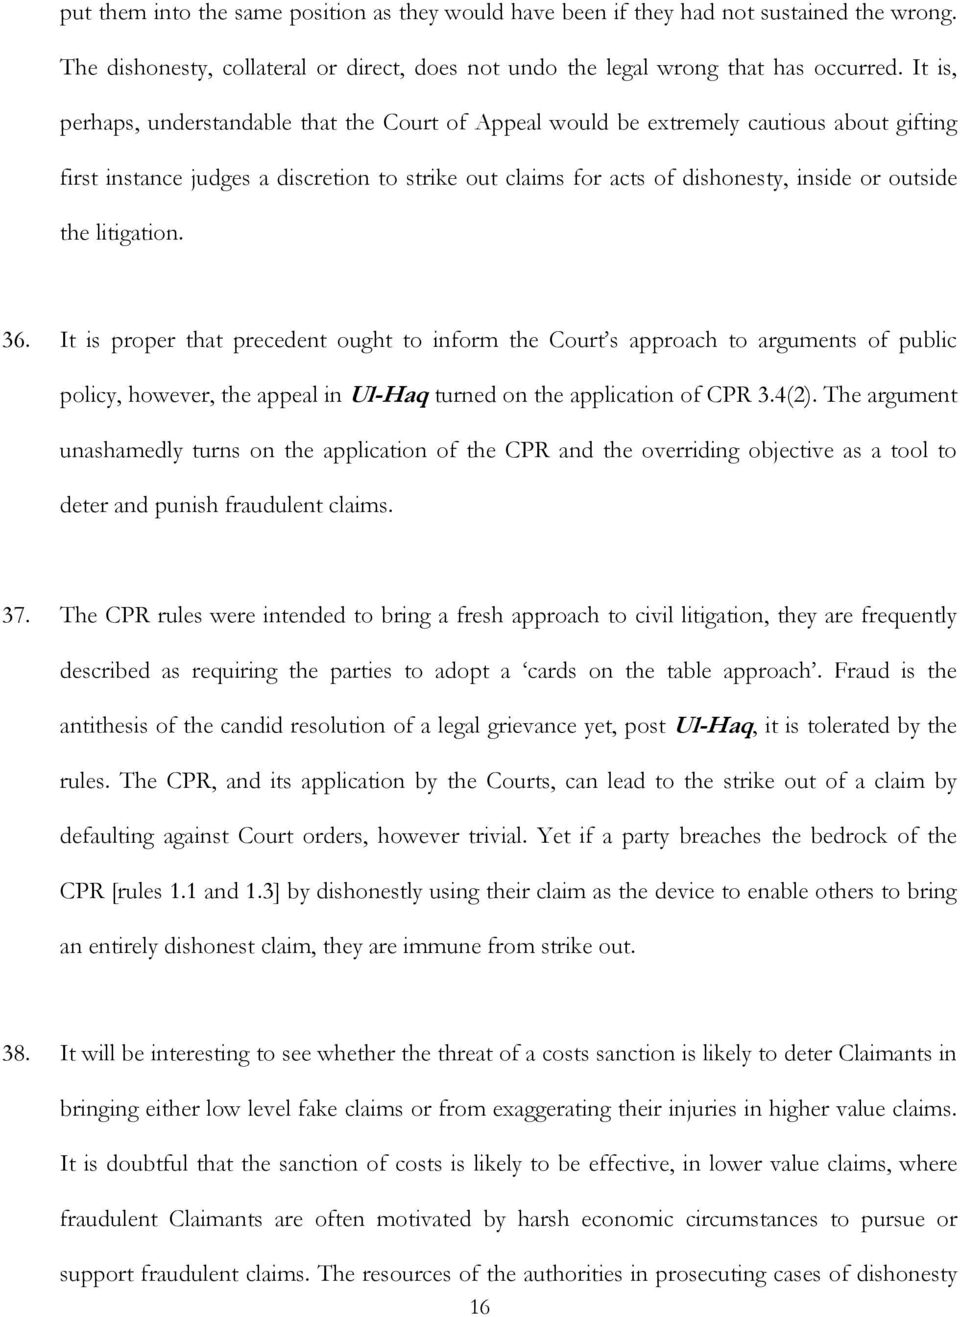 litigation. 36. It is proper that precedent ought to inform the Court s approach to arguments of public policy, however, the appeal in Ul-Haq turned on the application of CPR 3.4(2).